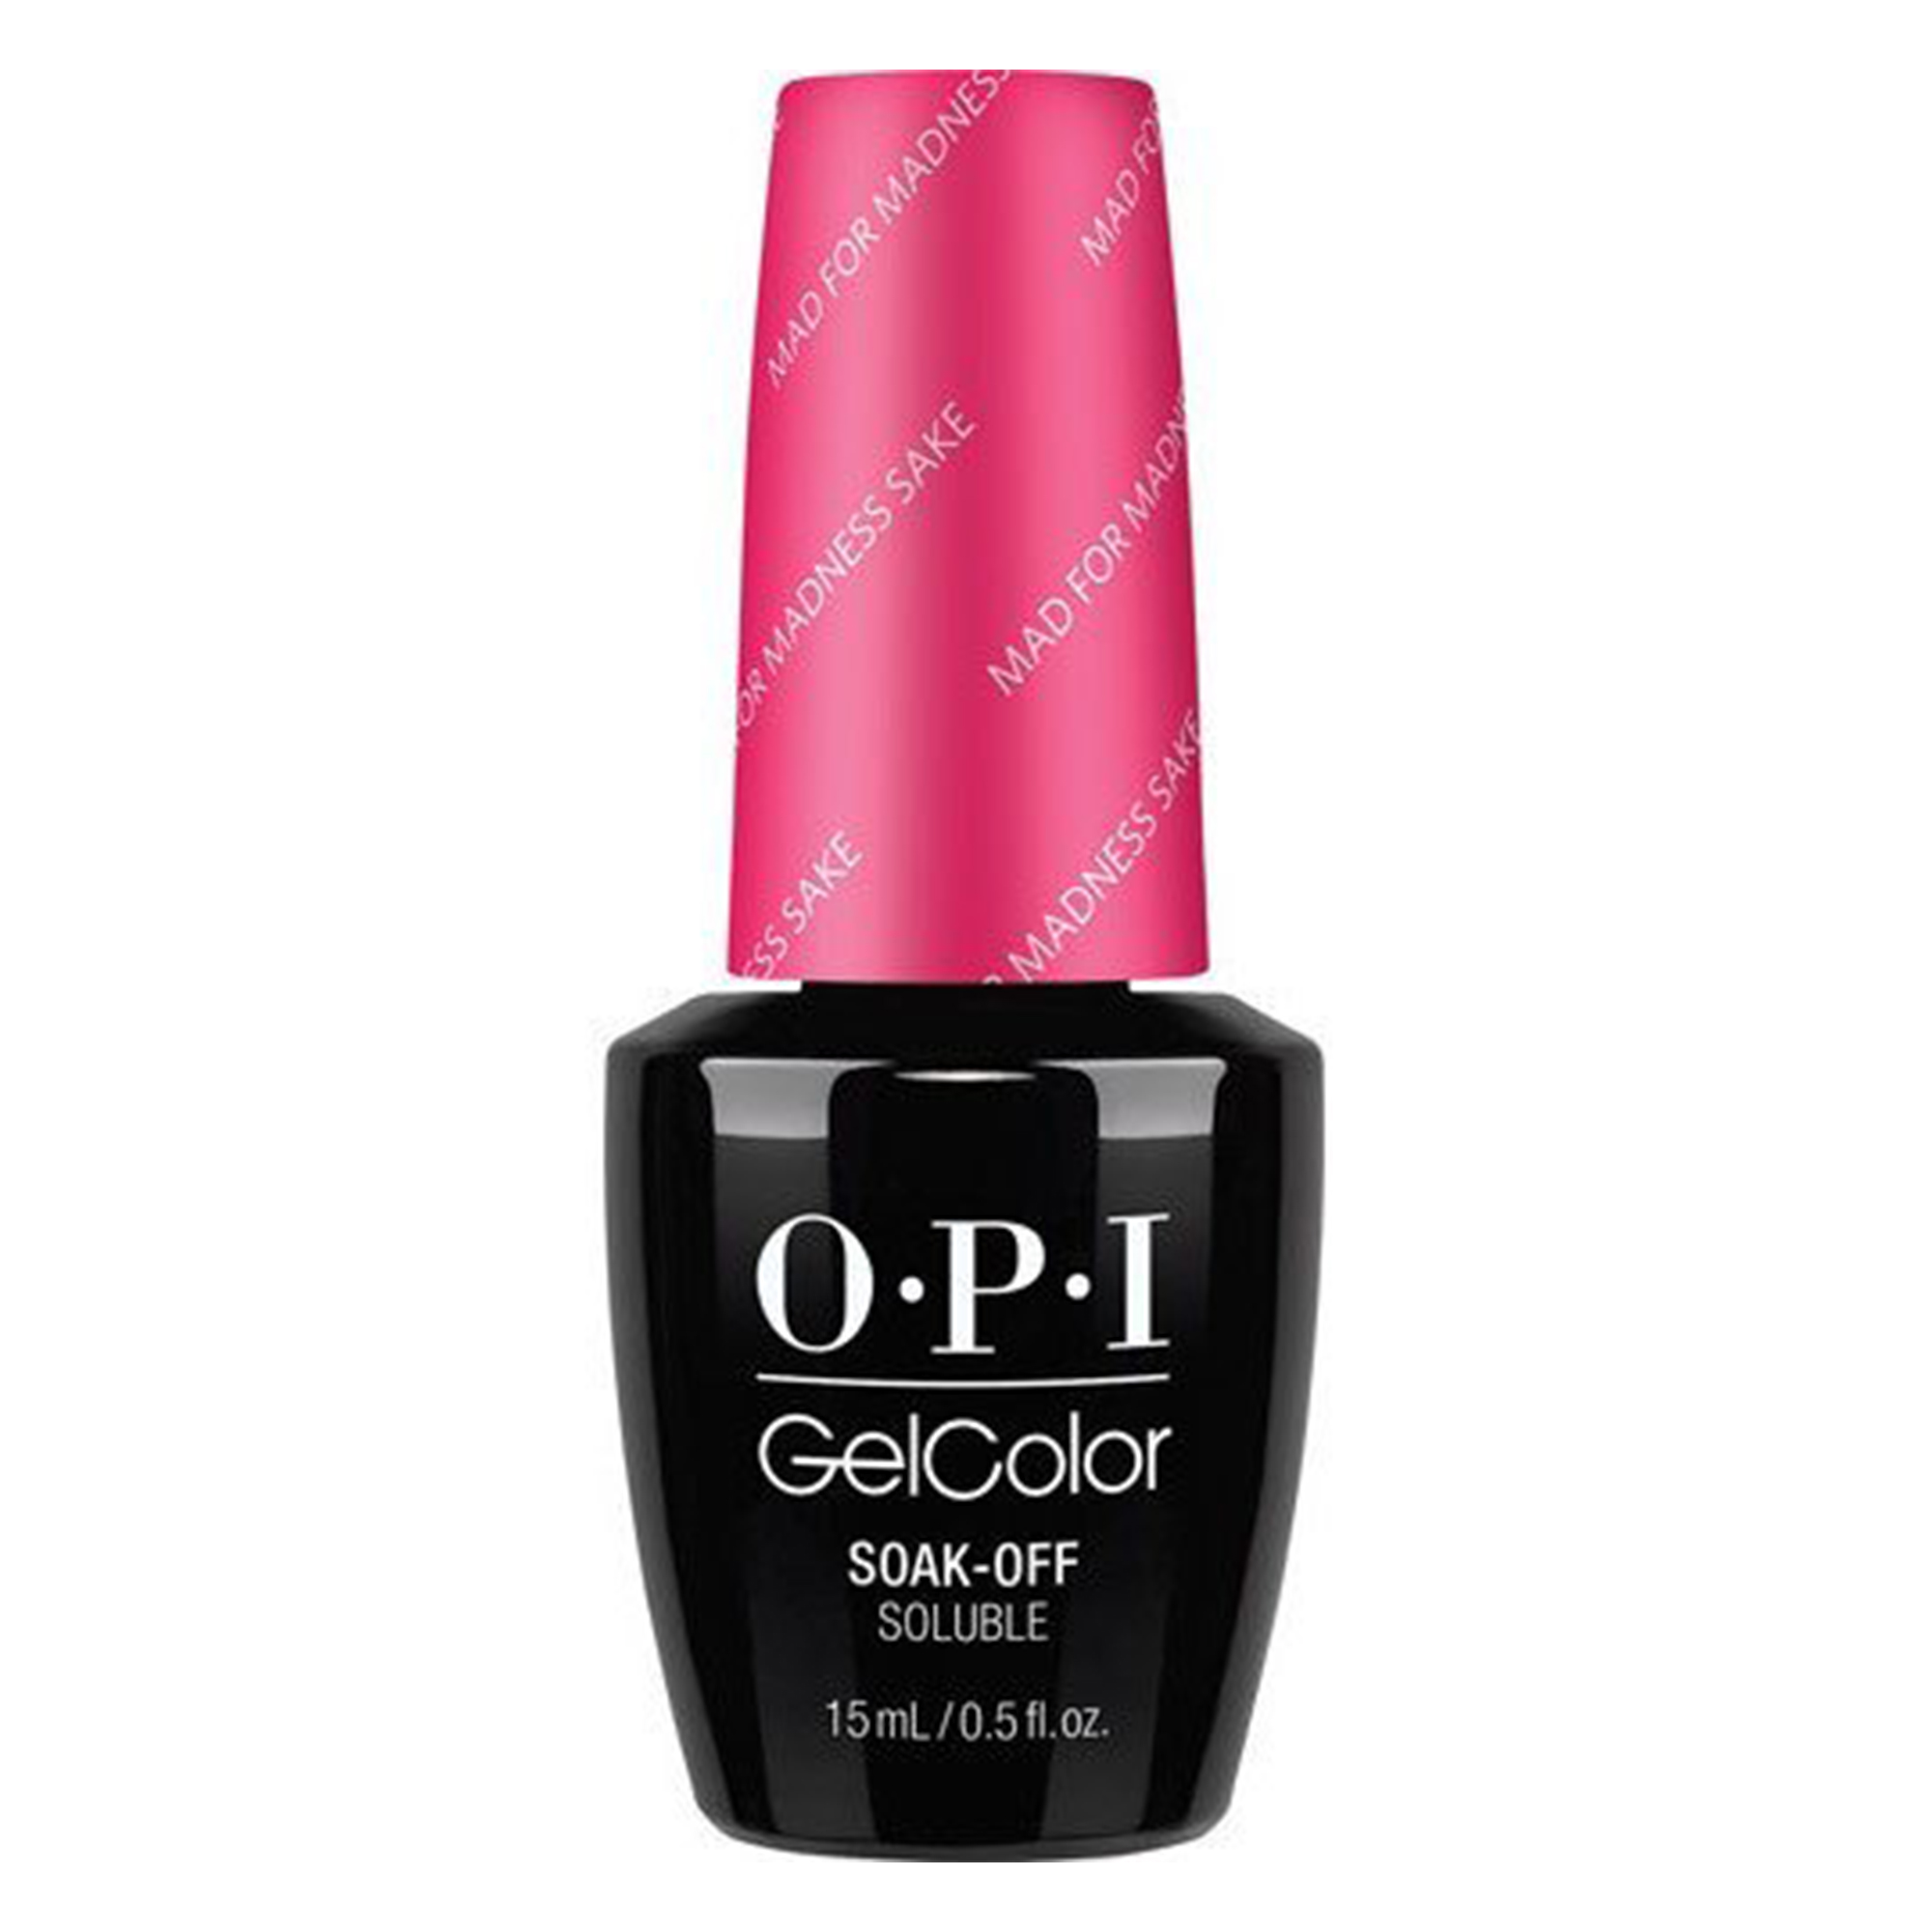 Opi Gelcolor Collection Nail Gel Lacquer, 0.5 Fluid Ounce - PEACE ...